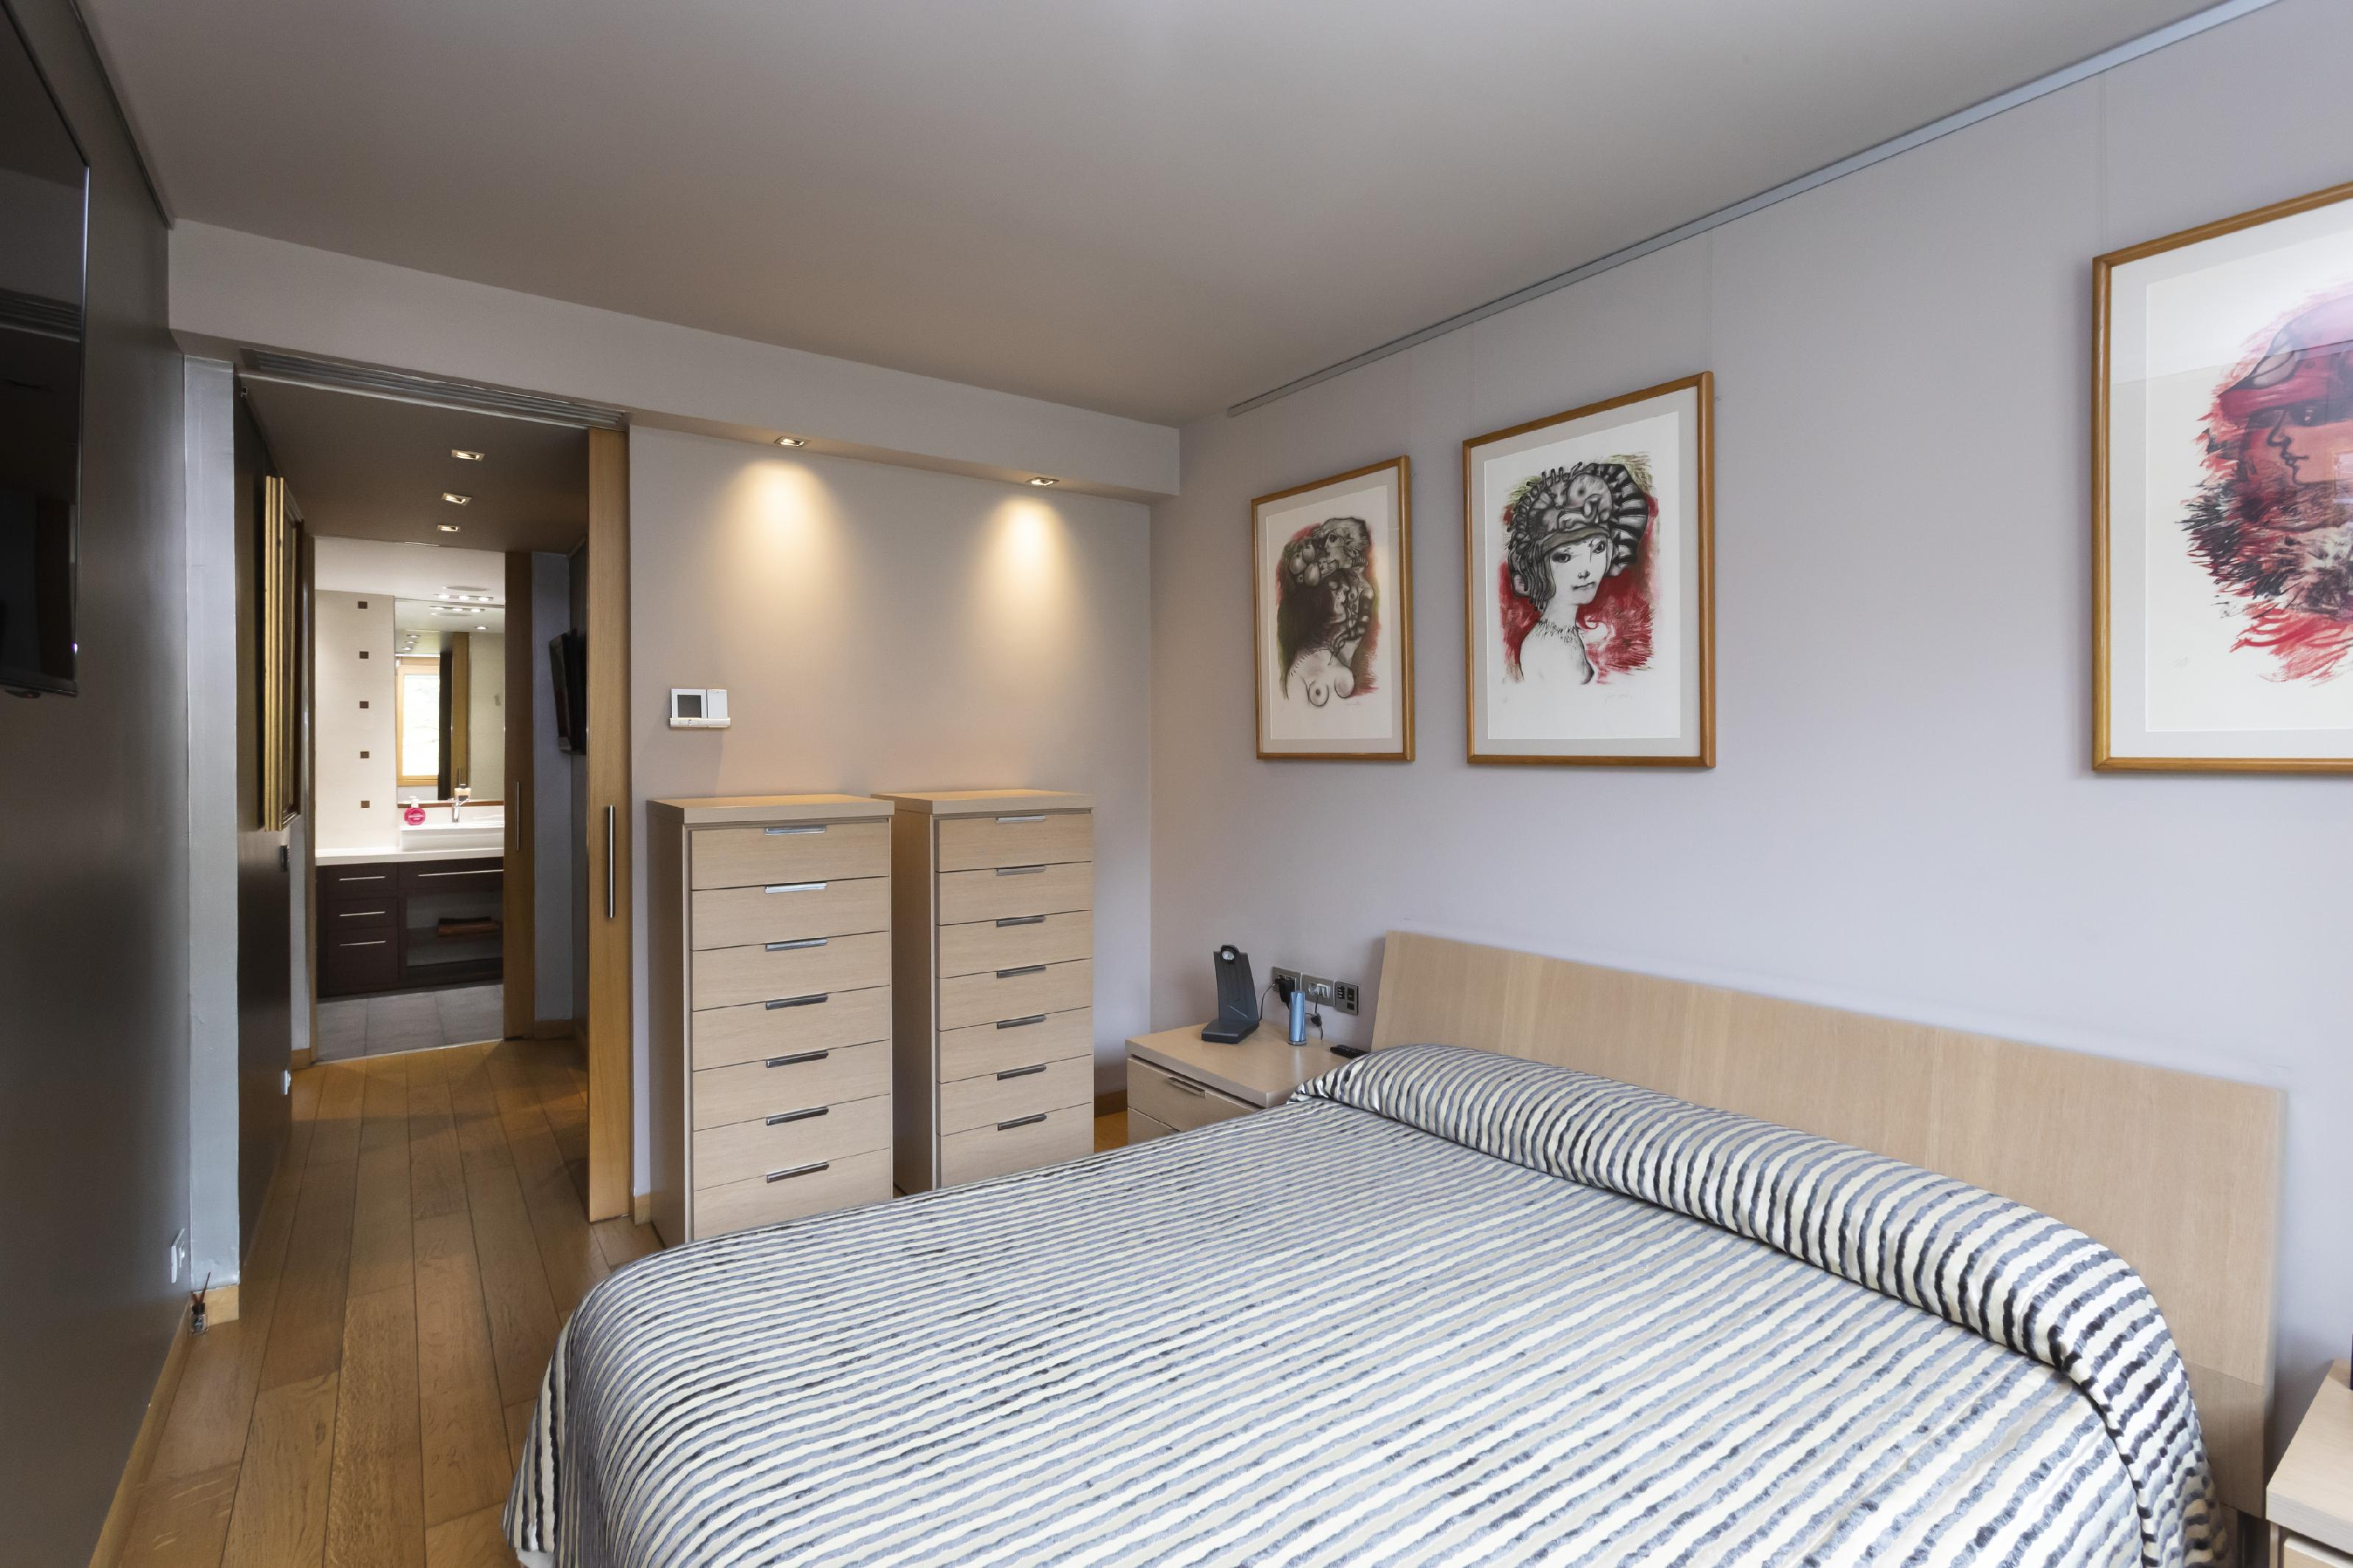 247020 Flat for sale in Les Corts, Les Corts 22